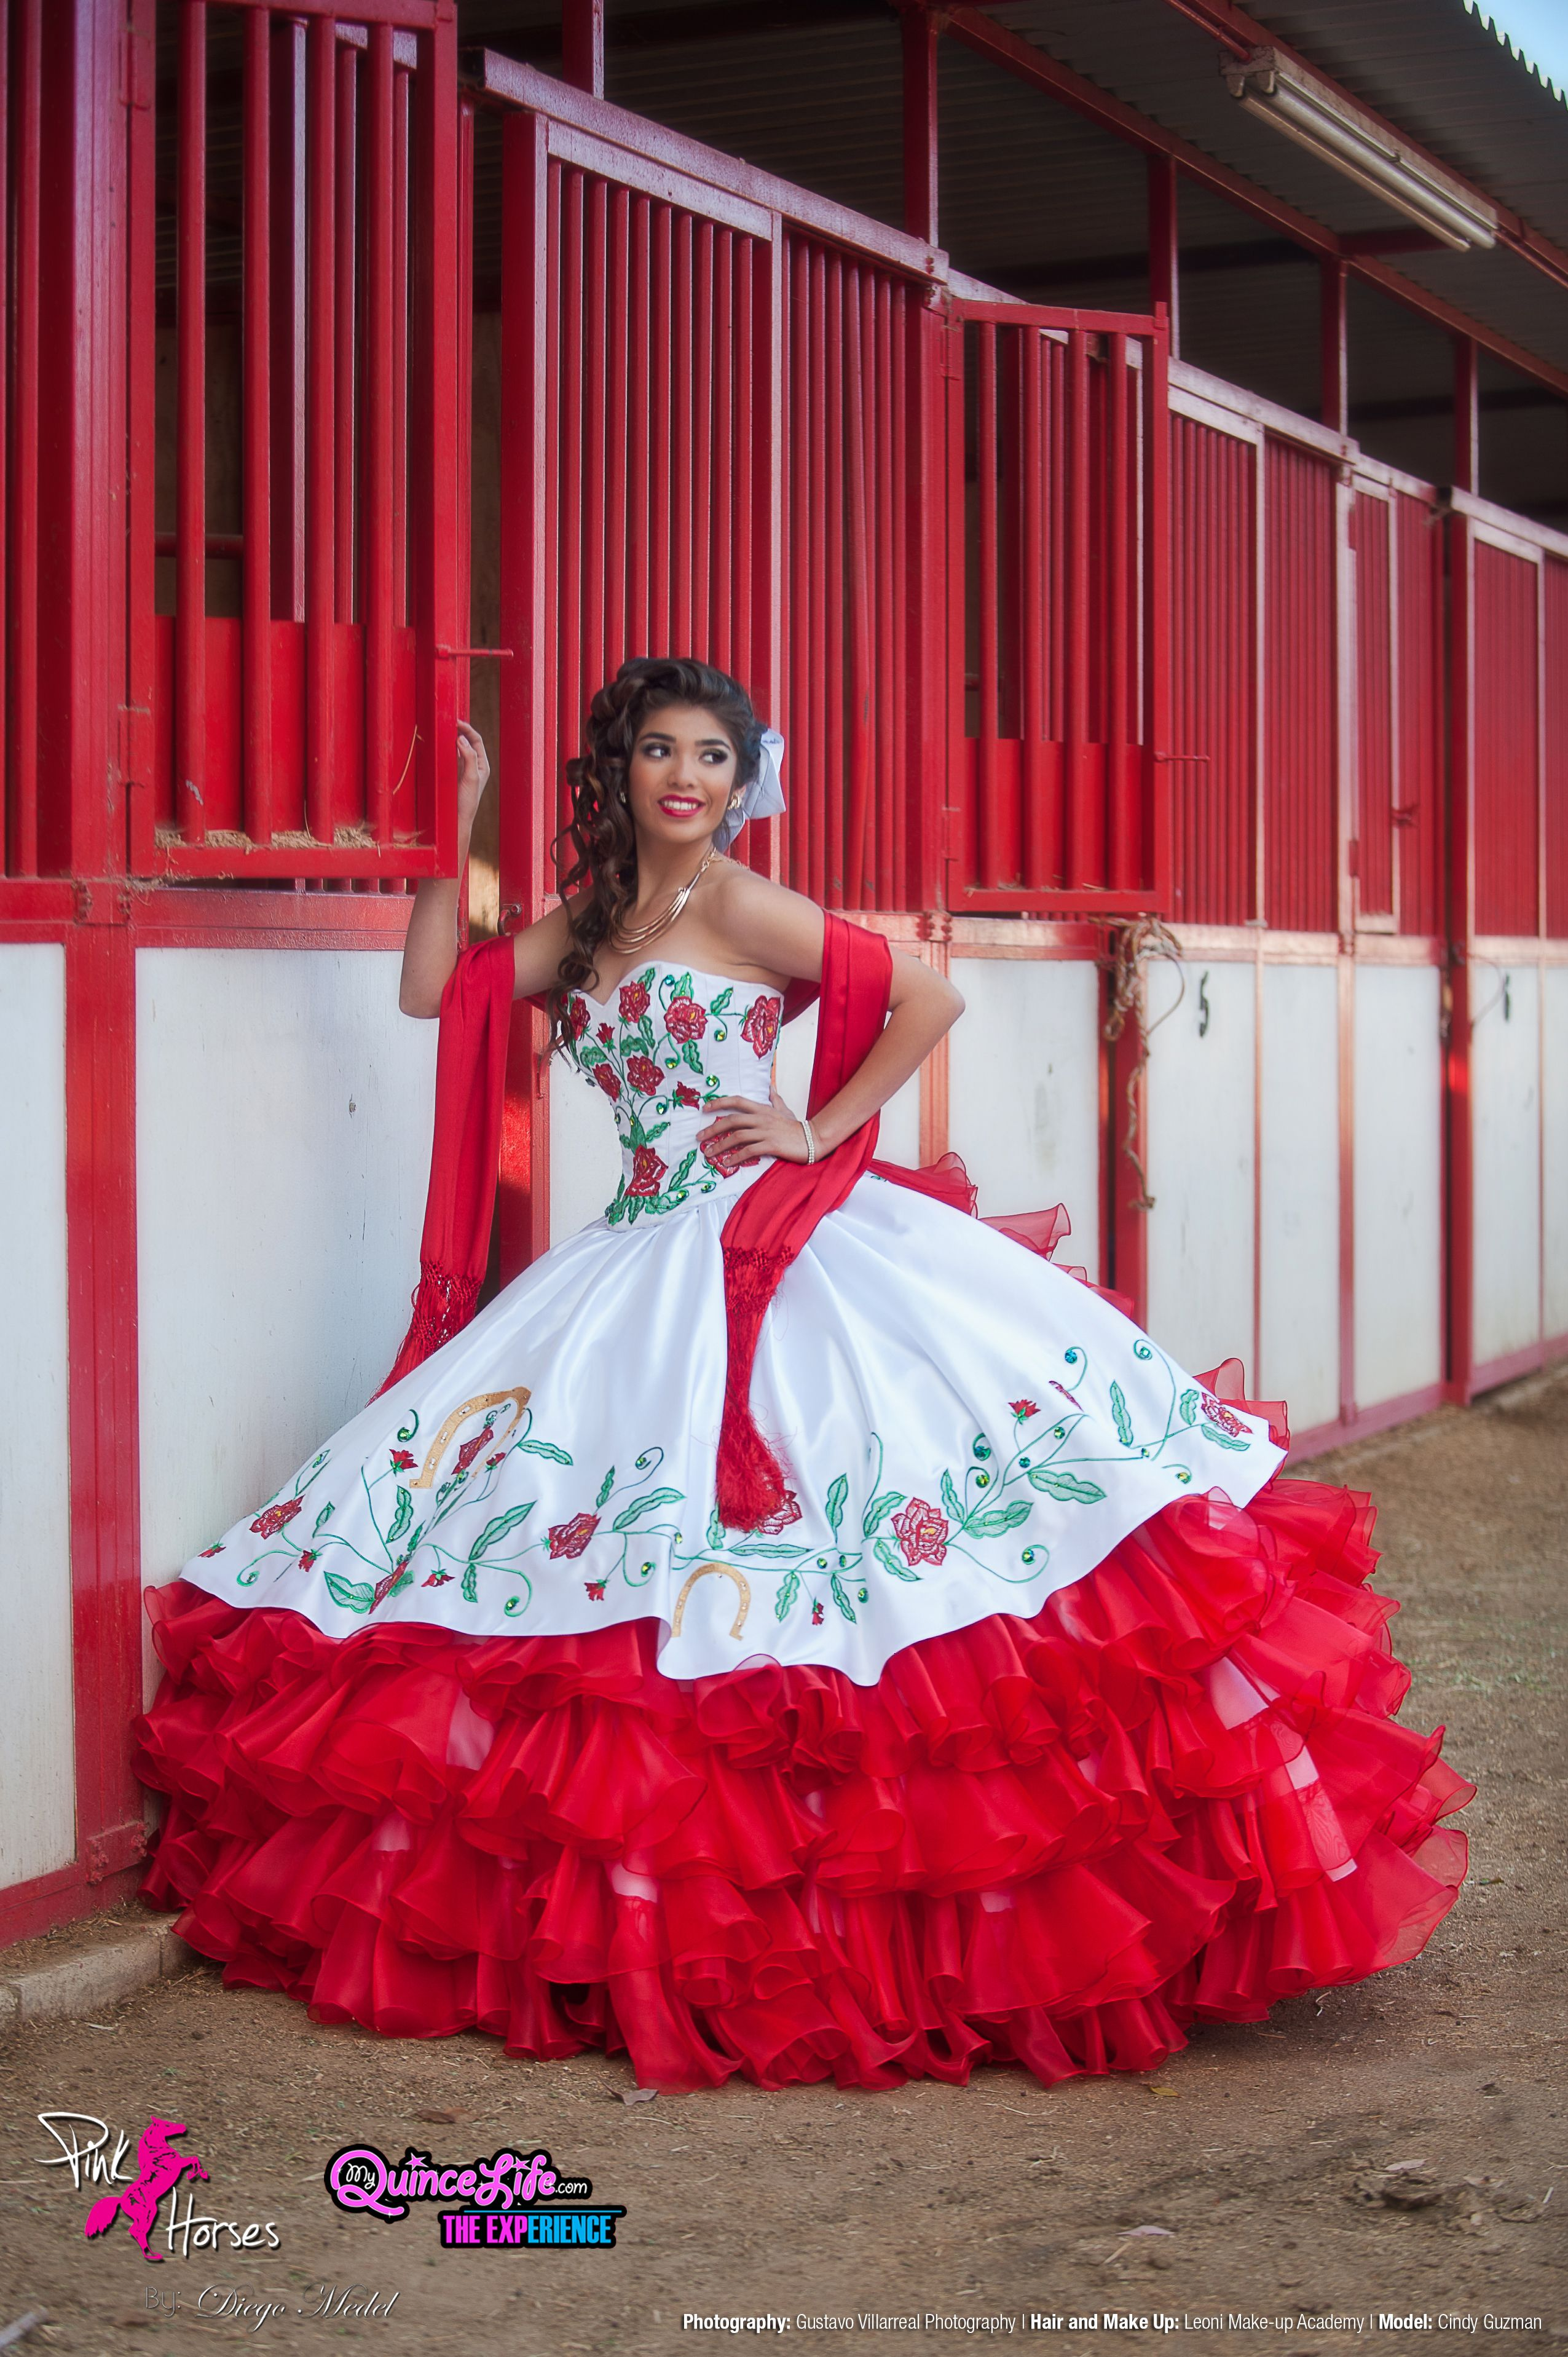 Cute 15 Year Old Boys Car Tuning: Mariachi 15 Dresses Images